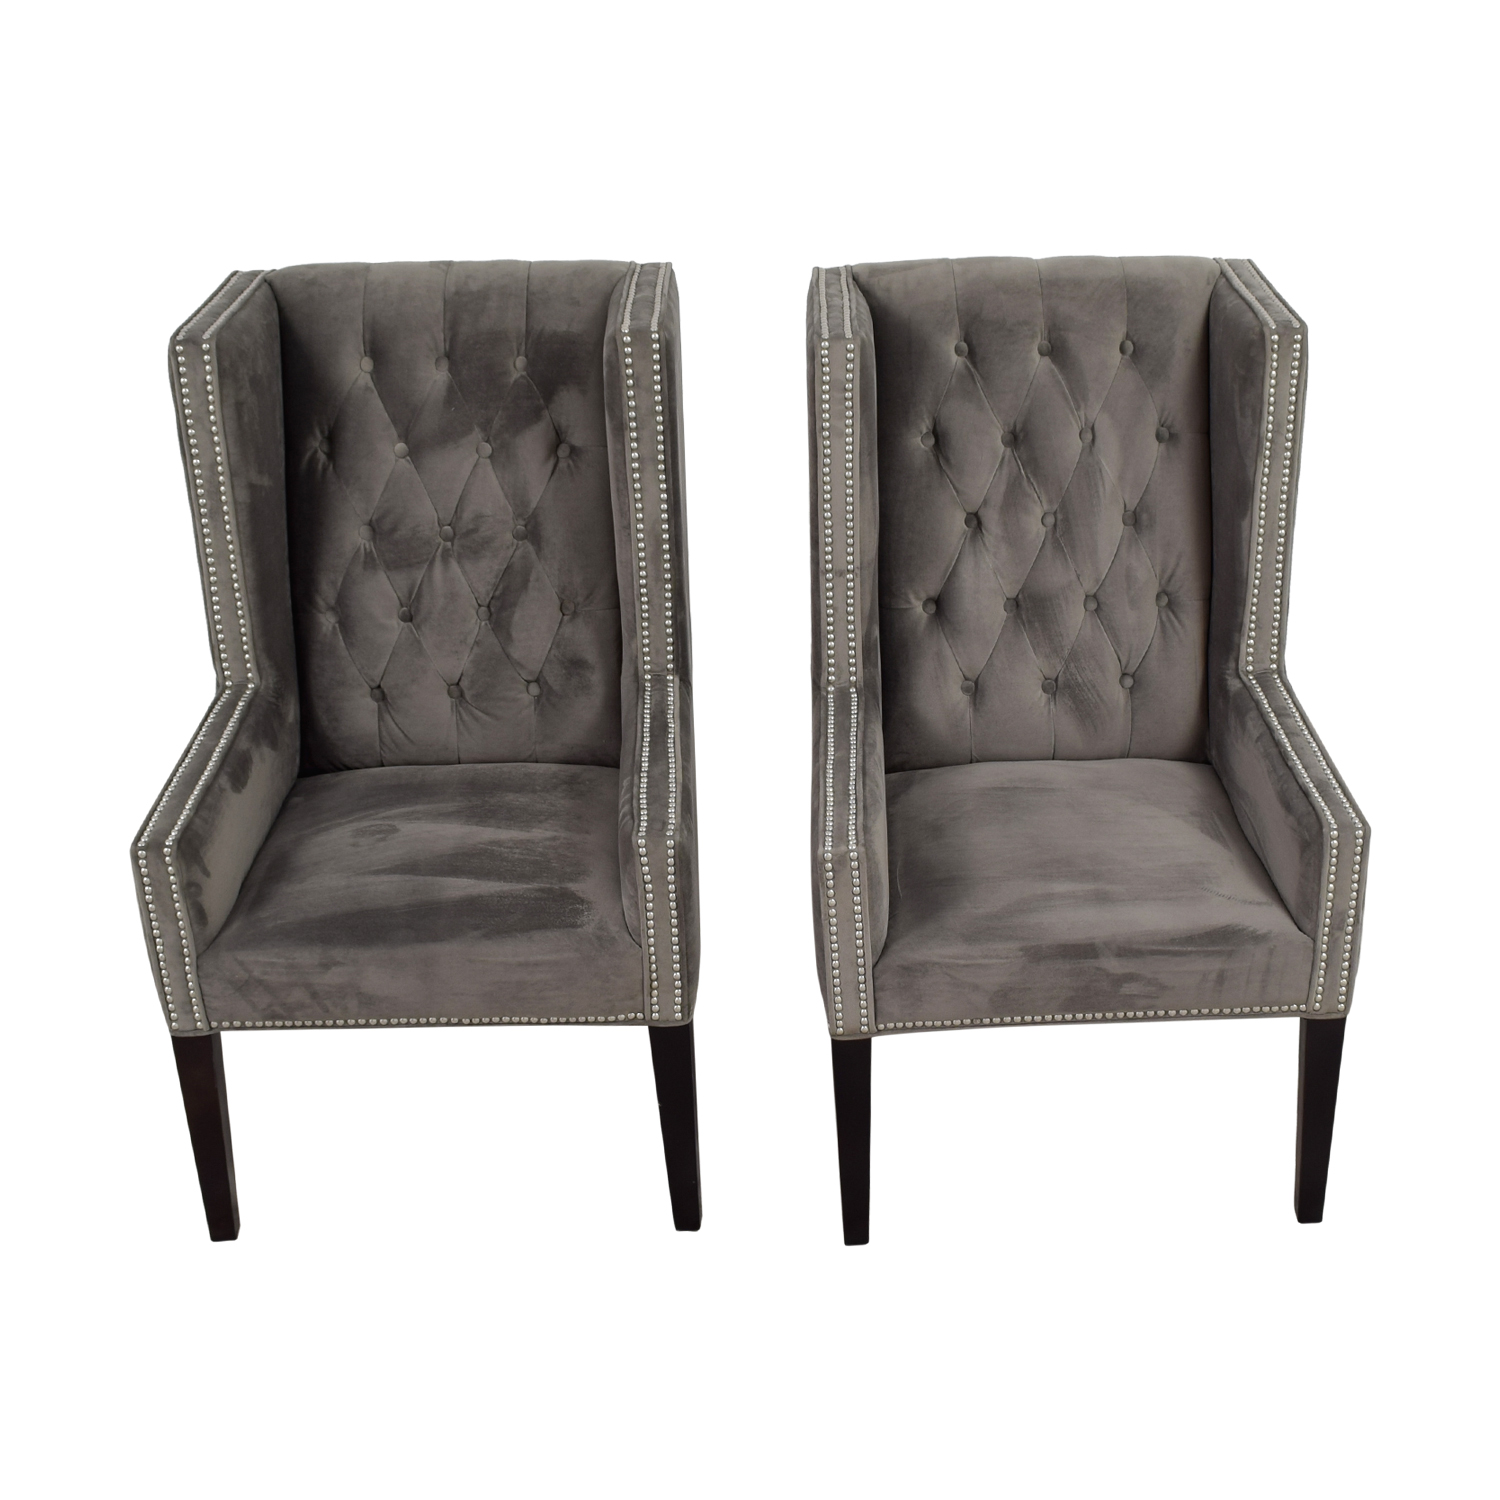 z gallerie chairs waffle chair used for sale